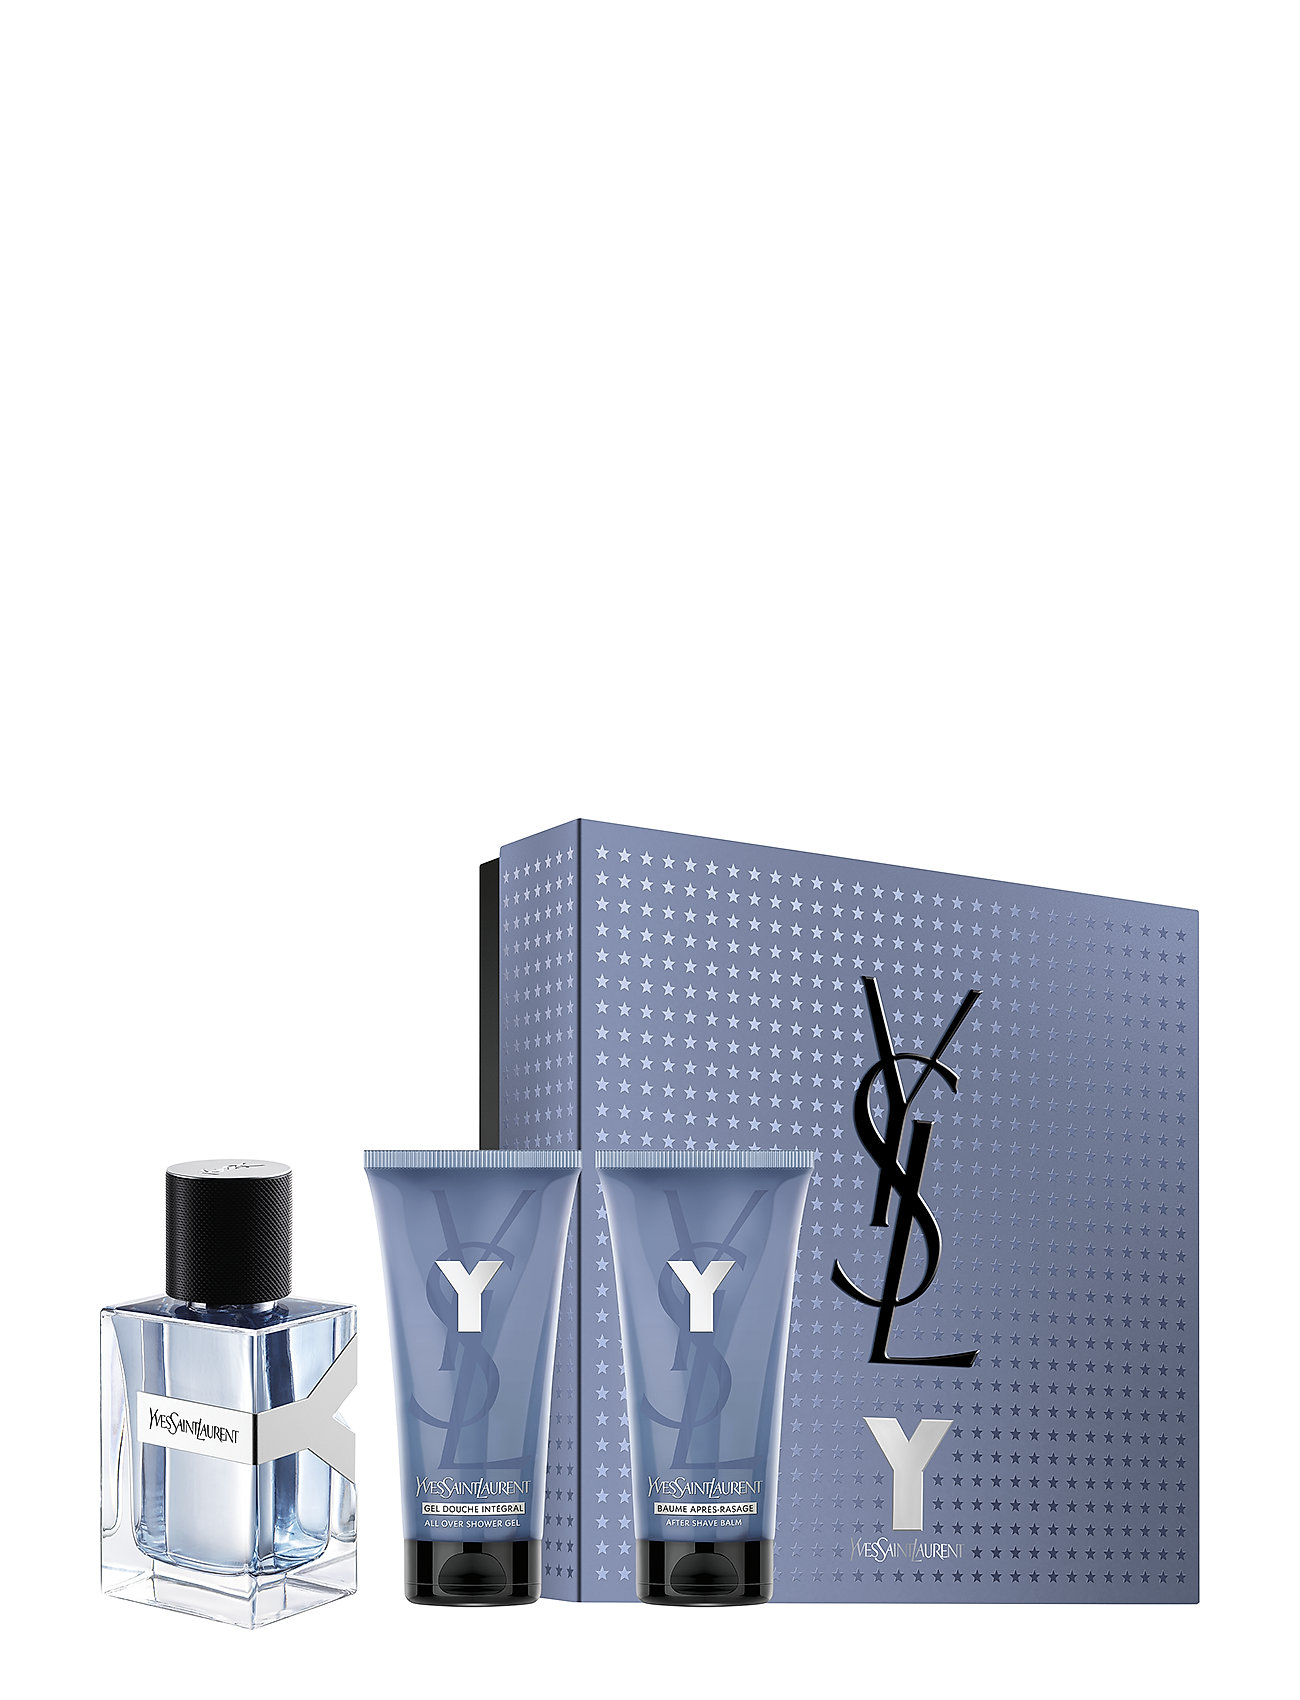 Yves Saint Laurent Y Eau de Toilette 60 ml Giftset - NO COLOUR